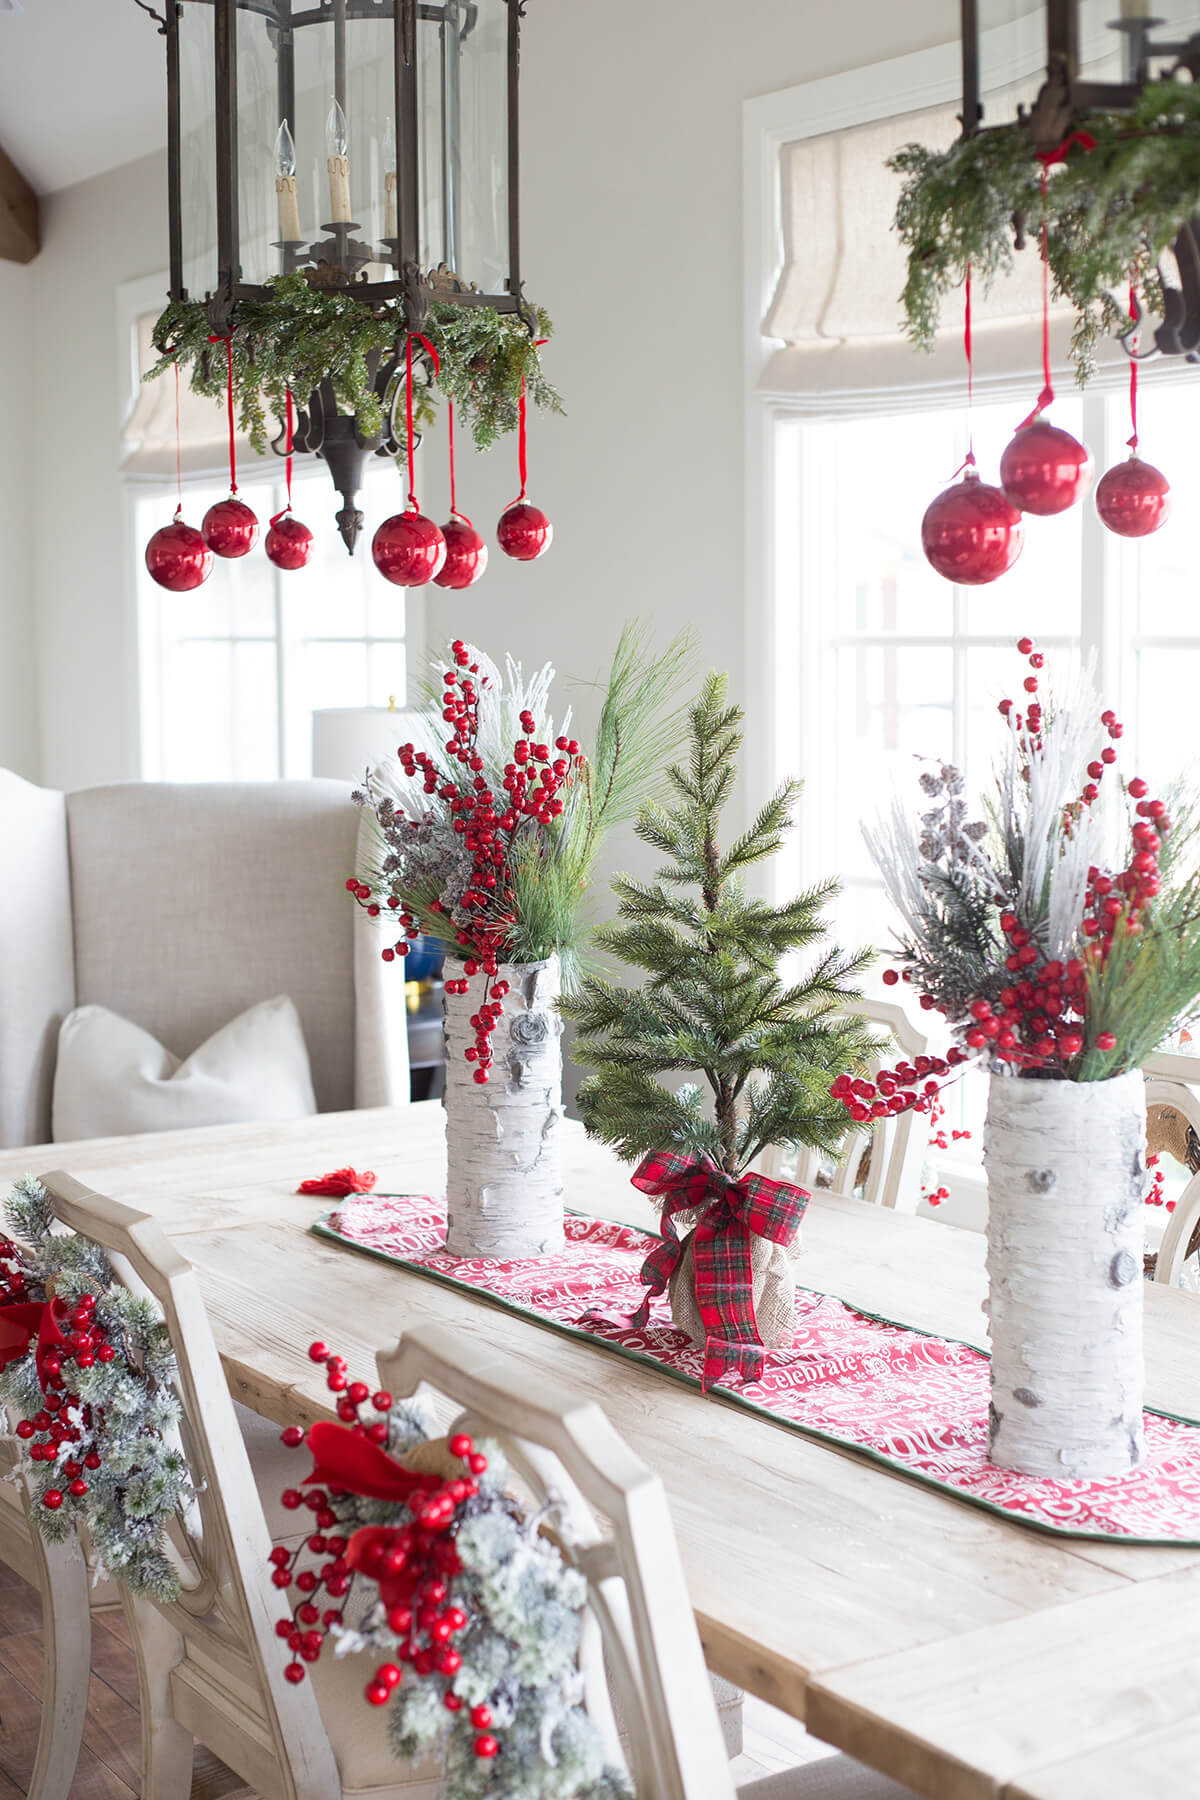 Best Red Christmas Decor Ideas And Designs For - Best red christmas decor ideas